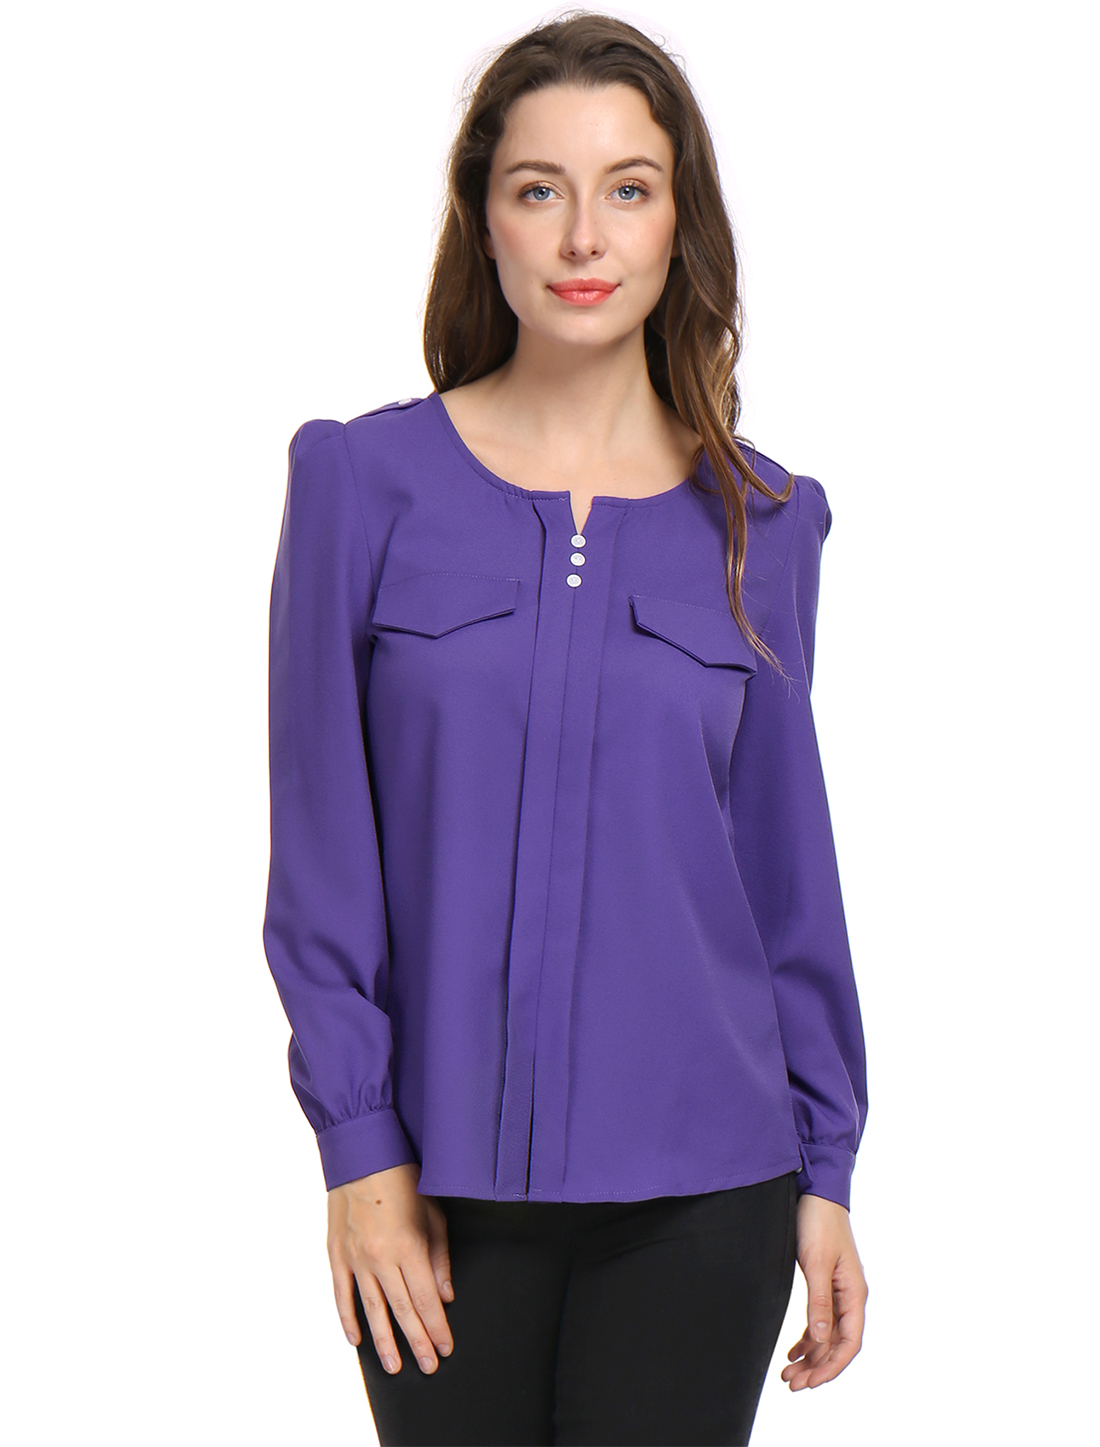 Women Buttons Decor Mock Pockets Ruched Blouse Purple M